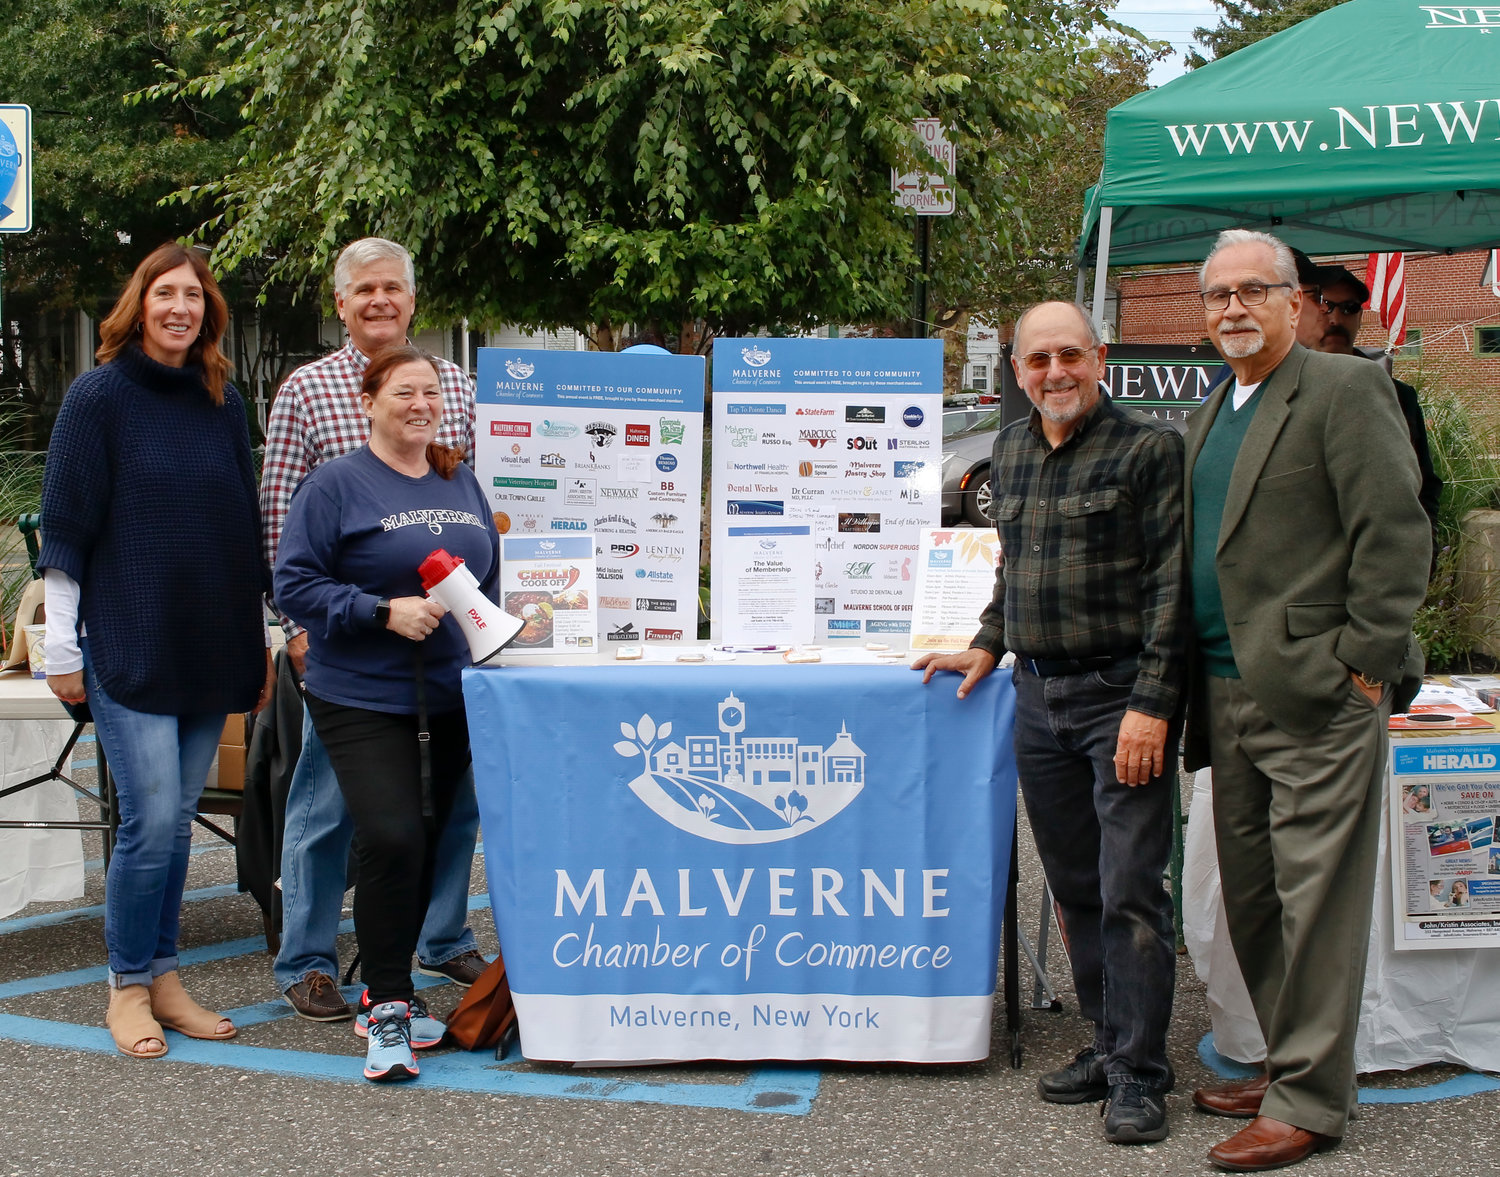 Elizabeth Krull, far left, has helped organize numerous events in the village as a member of Malverne's Chamber of Commerce.